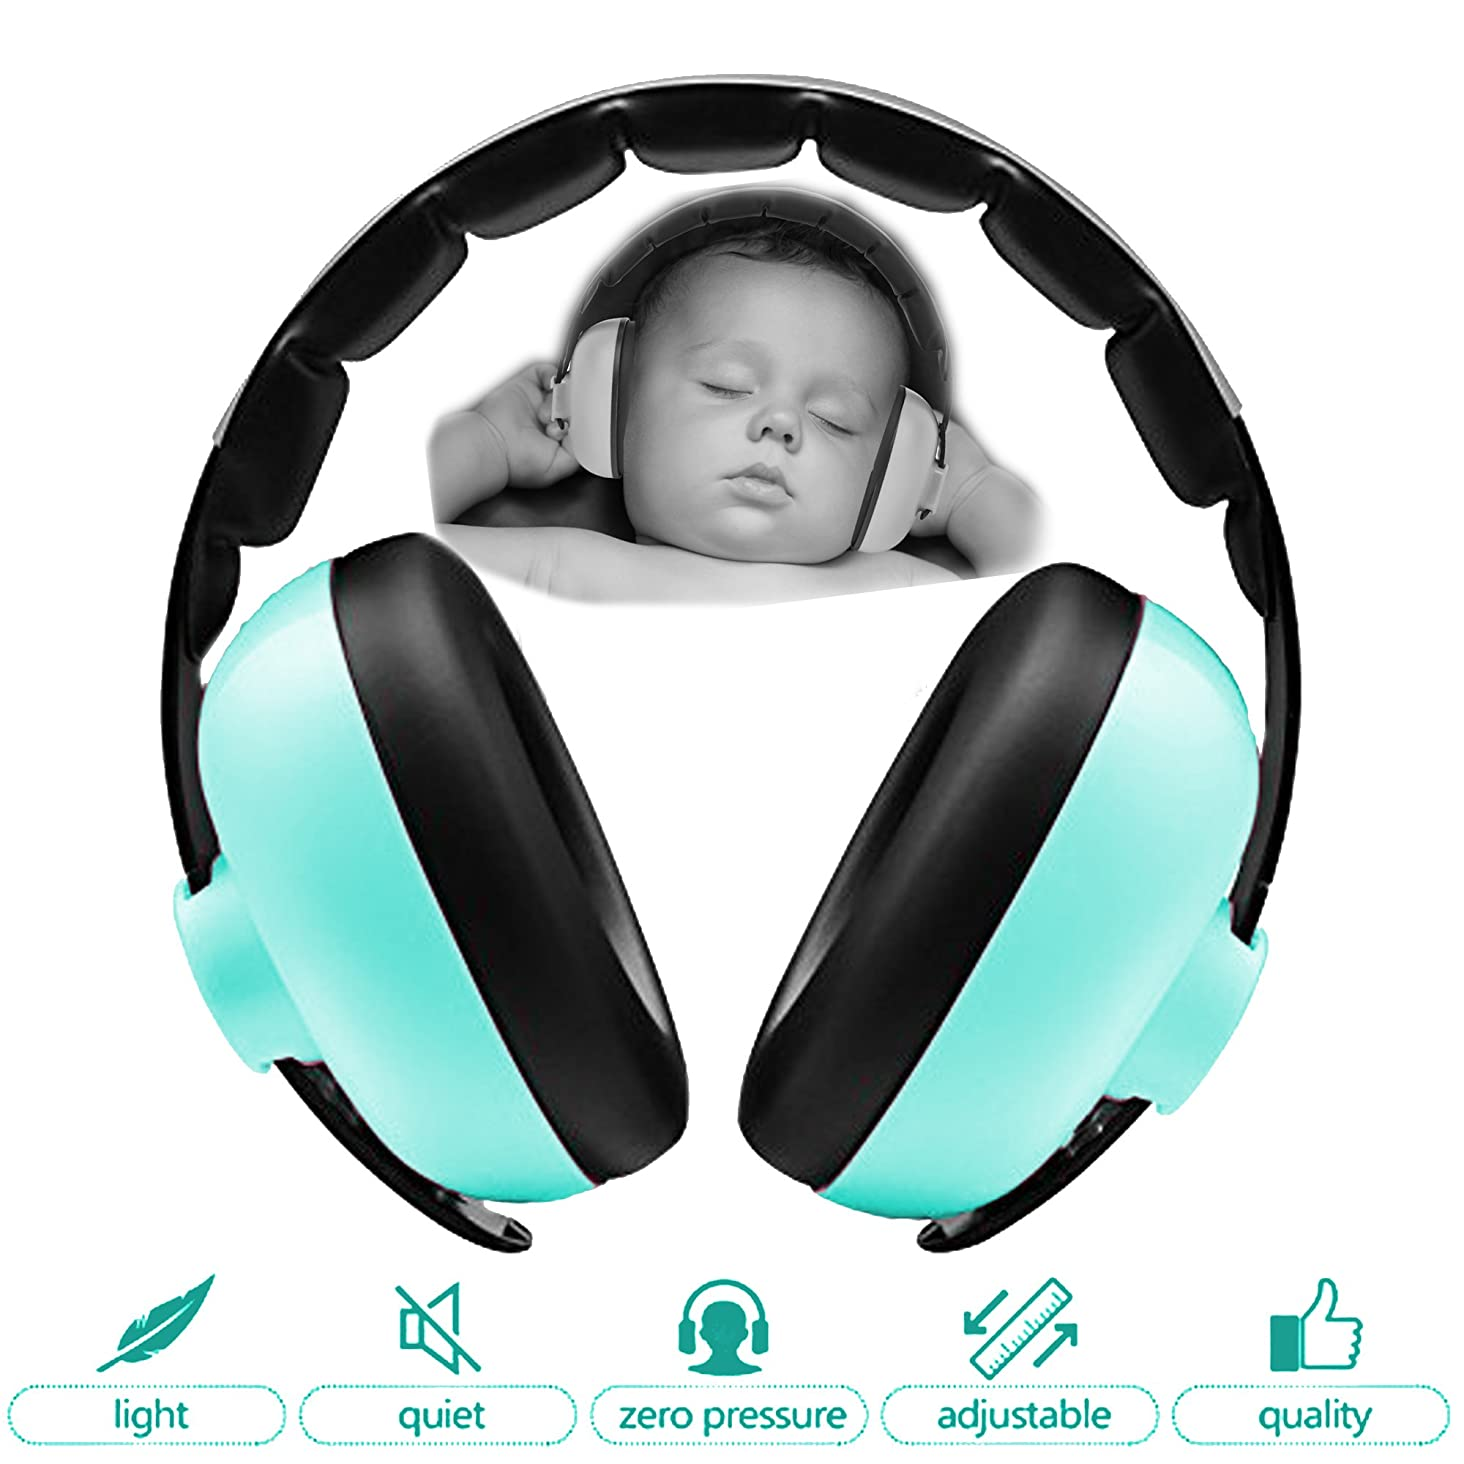 Zoom Time Baby Toddler Safety Noise Cancelling Ear Protection Headphones Travel Safe BEST Infant Ear Protection Ages 0-2+ Years Old Adjustable Design Headband Earmuffs Girls or Boys Baseball Fireworks